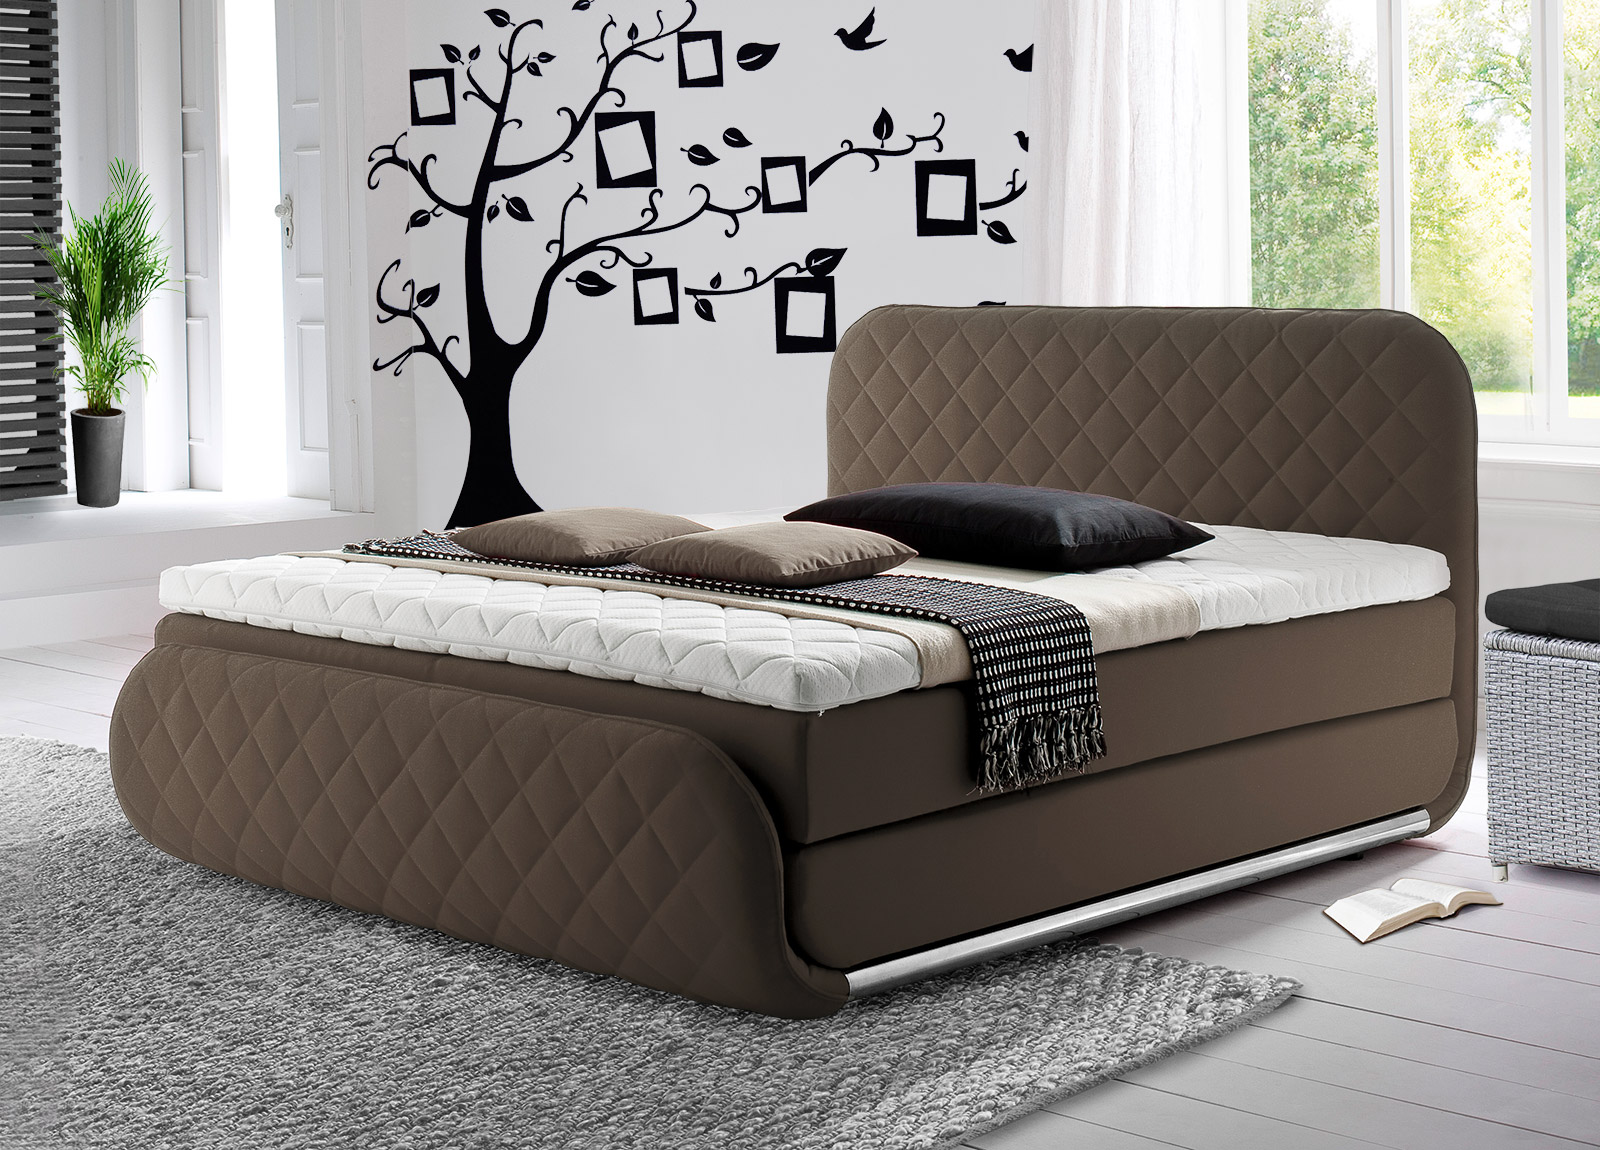 boxspringbett schlafzimmer set raum und m beldesign inspiration. Black Bedroom Furniture Sets. Home Design Ideas